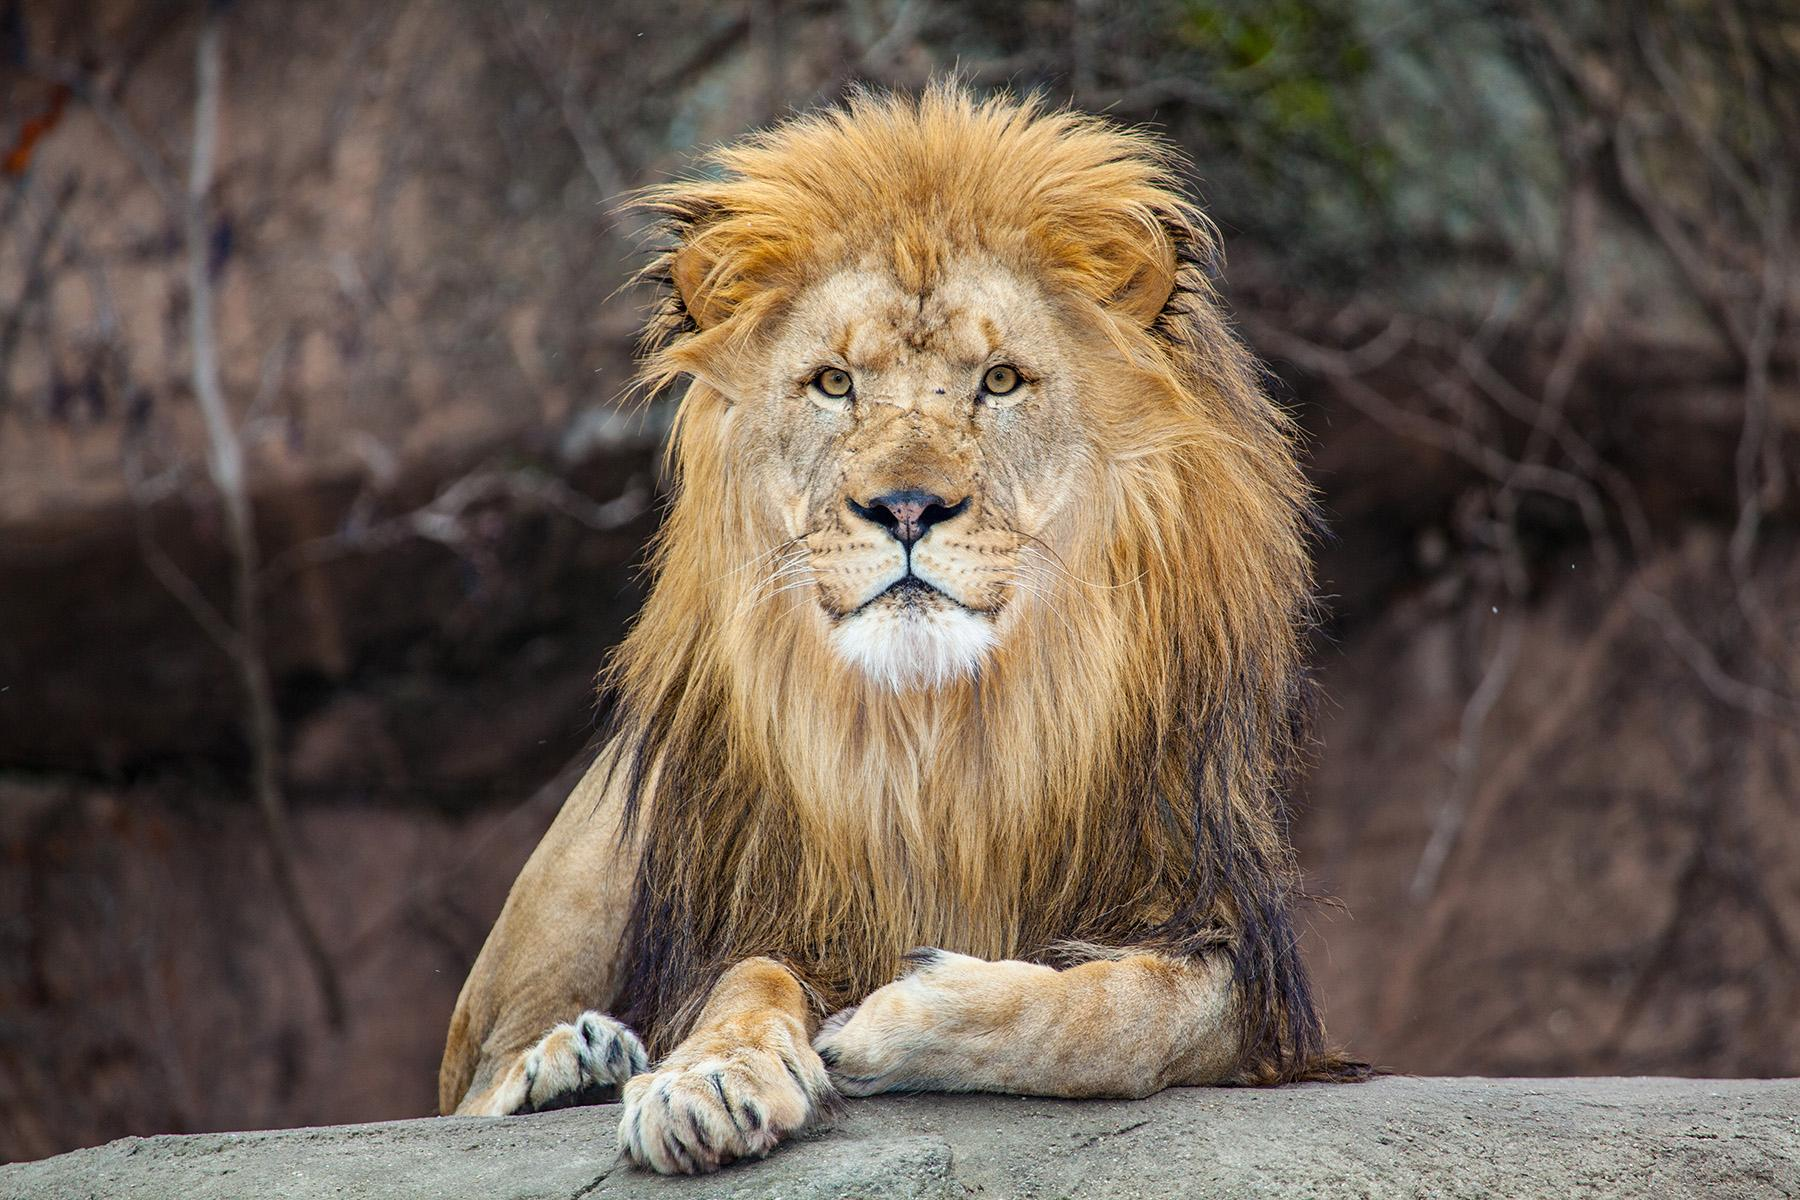 Sahar, a 9-year-old male lion at Lincoln Park Zoo (Courtesy Lincoln Park Zoo)